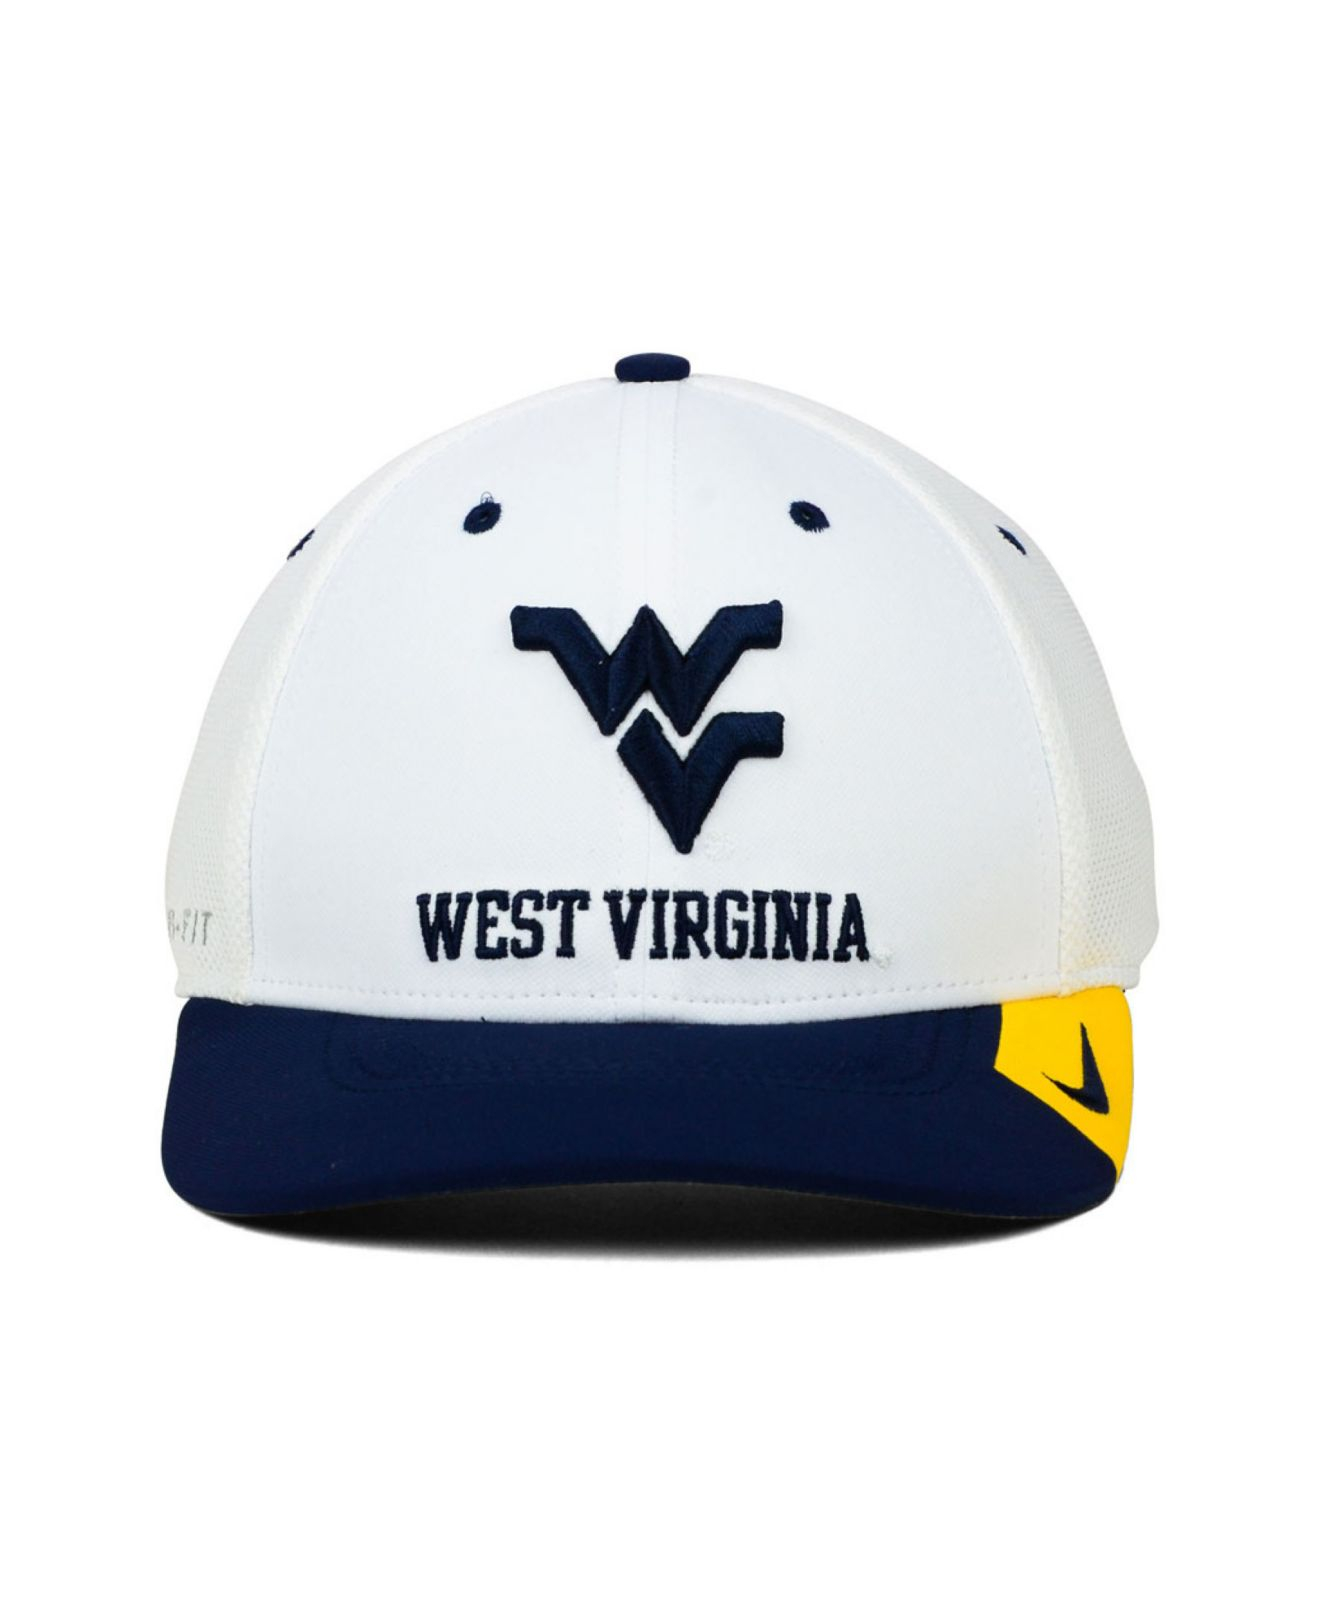 4f0ae038 ... release date aliexpress lyst nike west virginia mountaineers conference  swf cap in white d5682 8a840 e4031